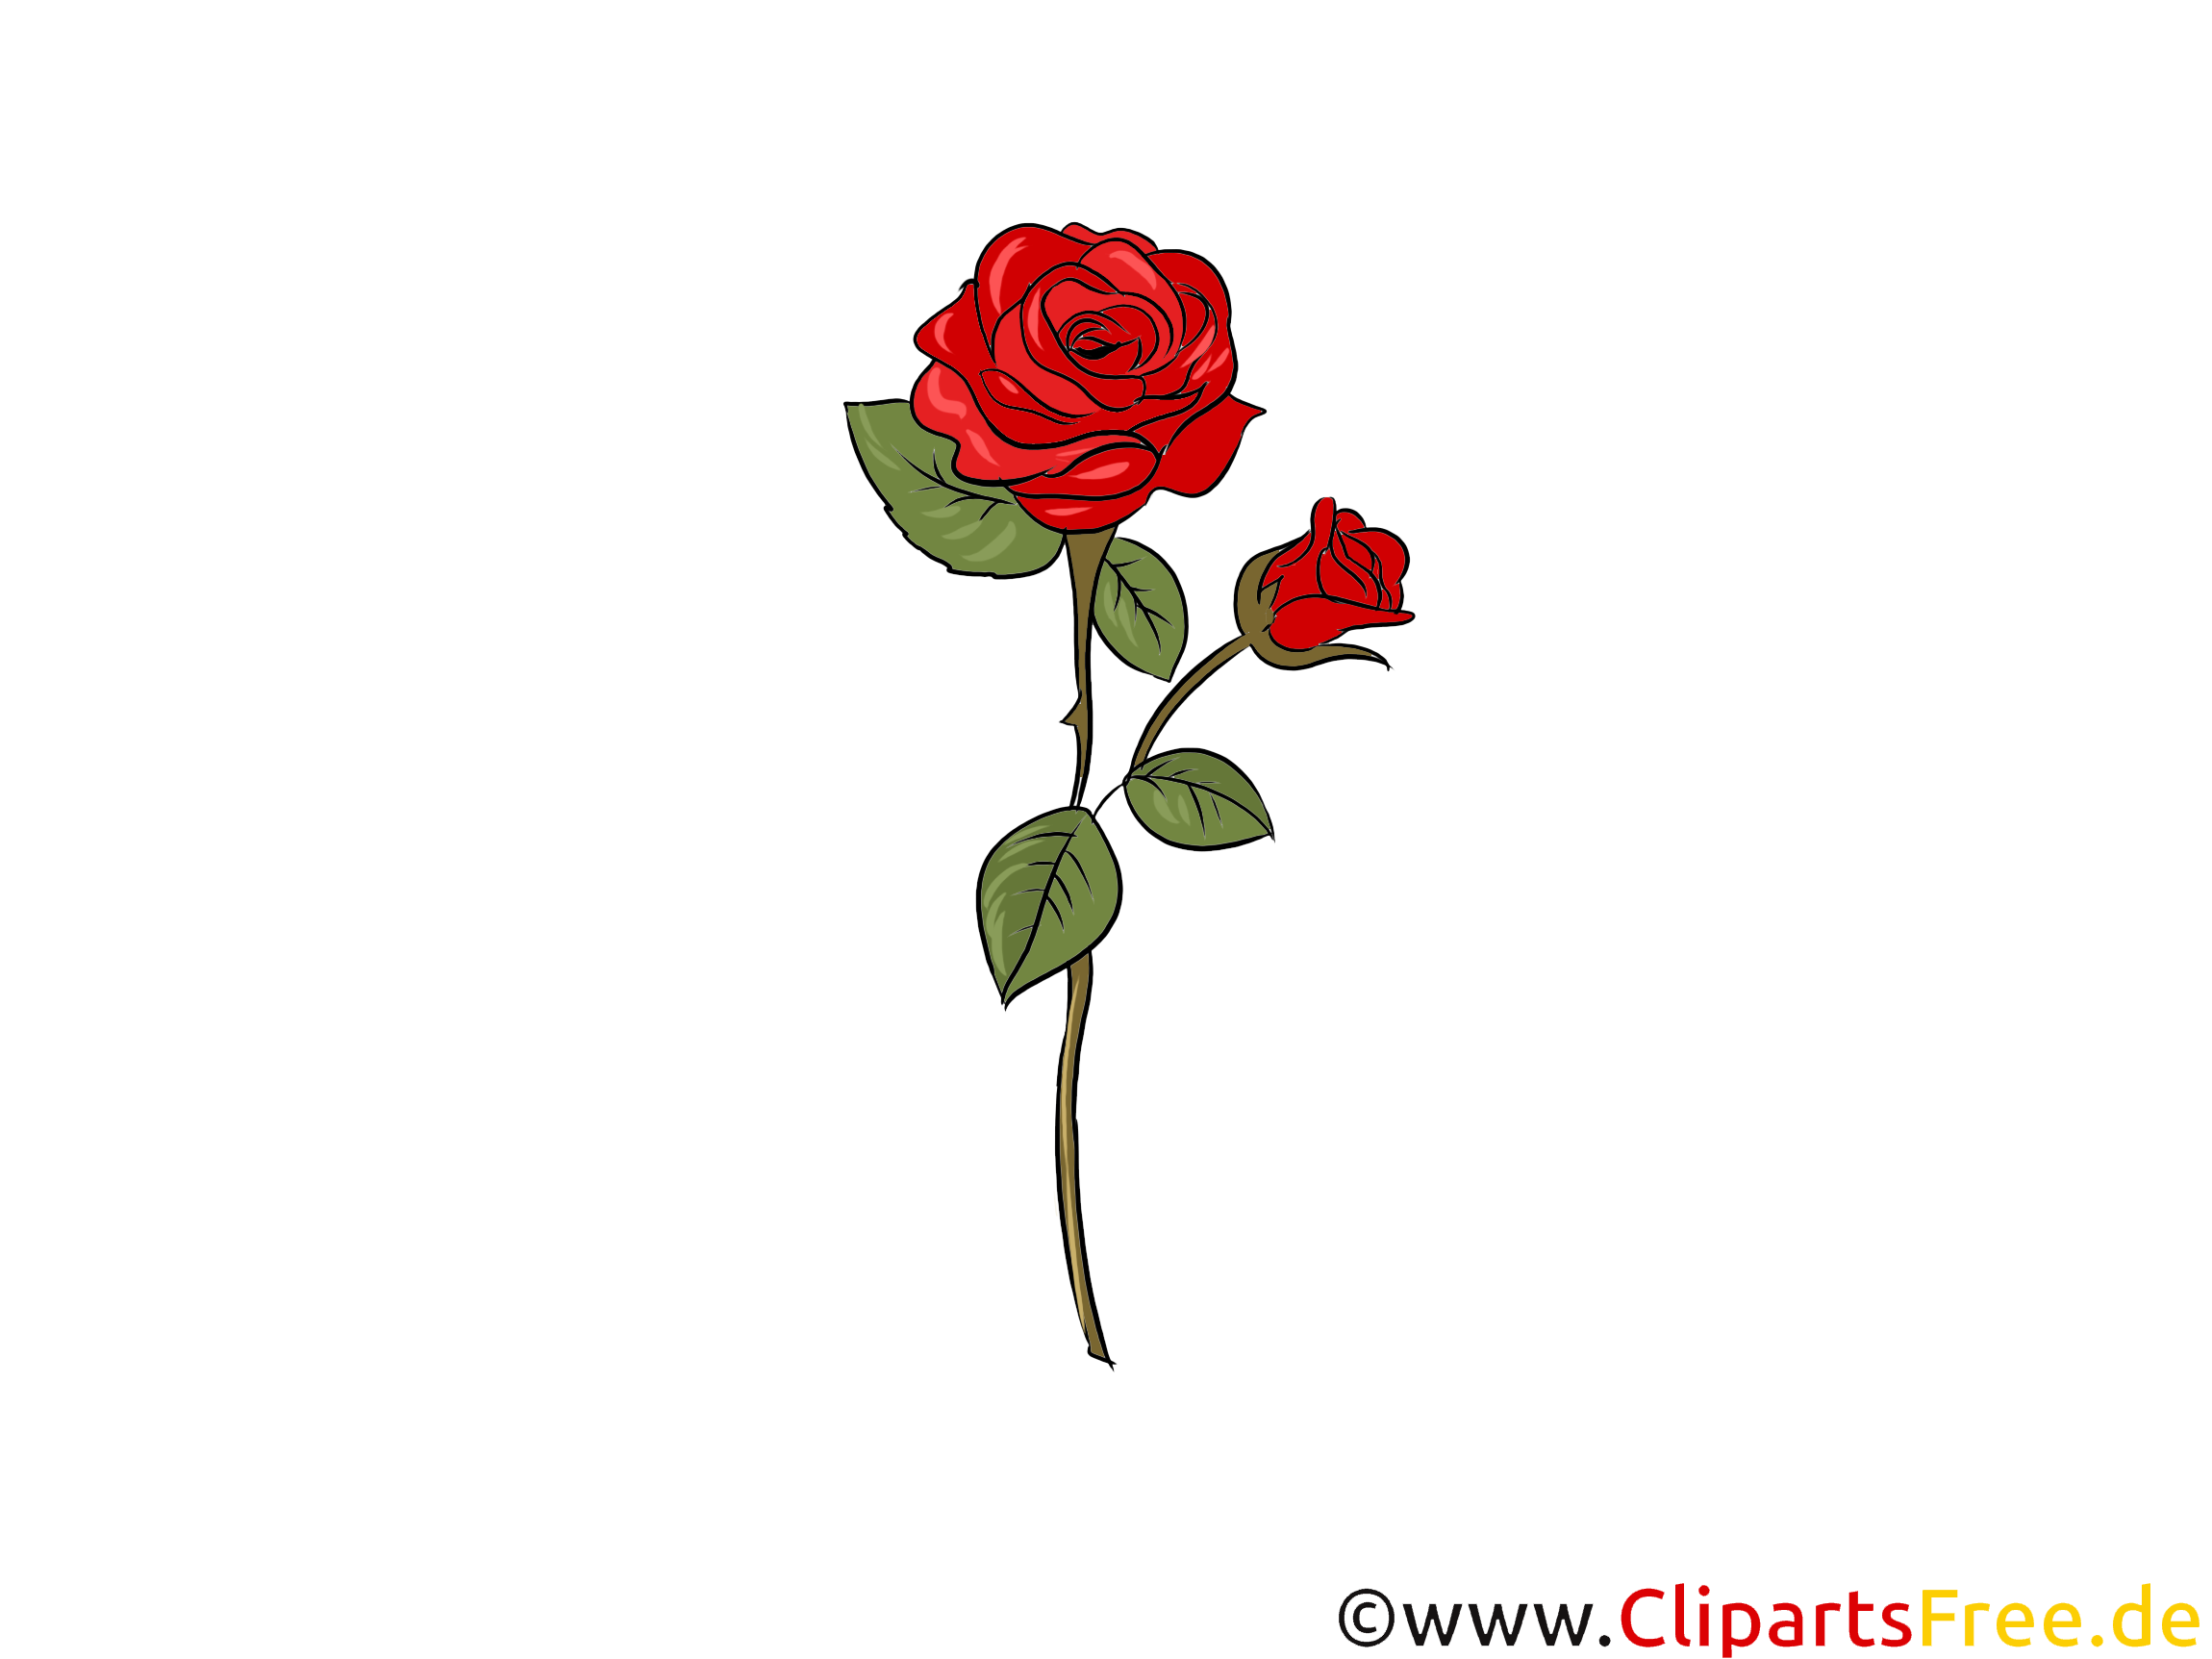 Rote Rose Clipart, Bild, Illustration, Grafik